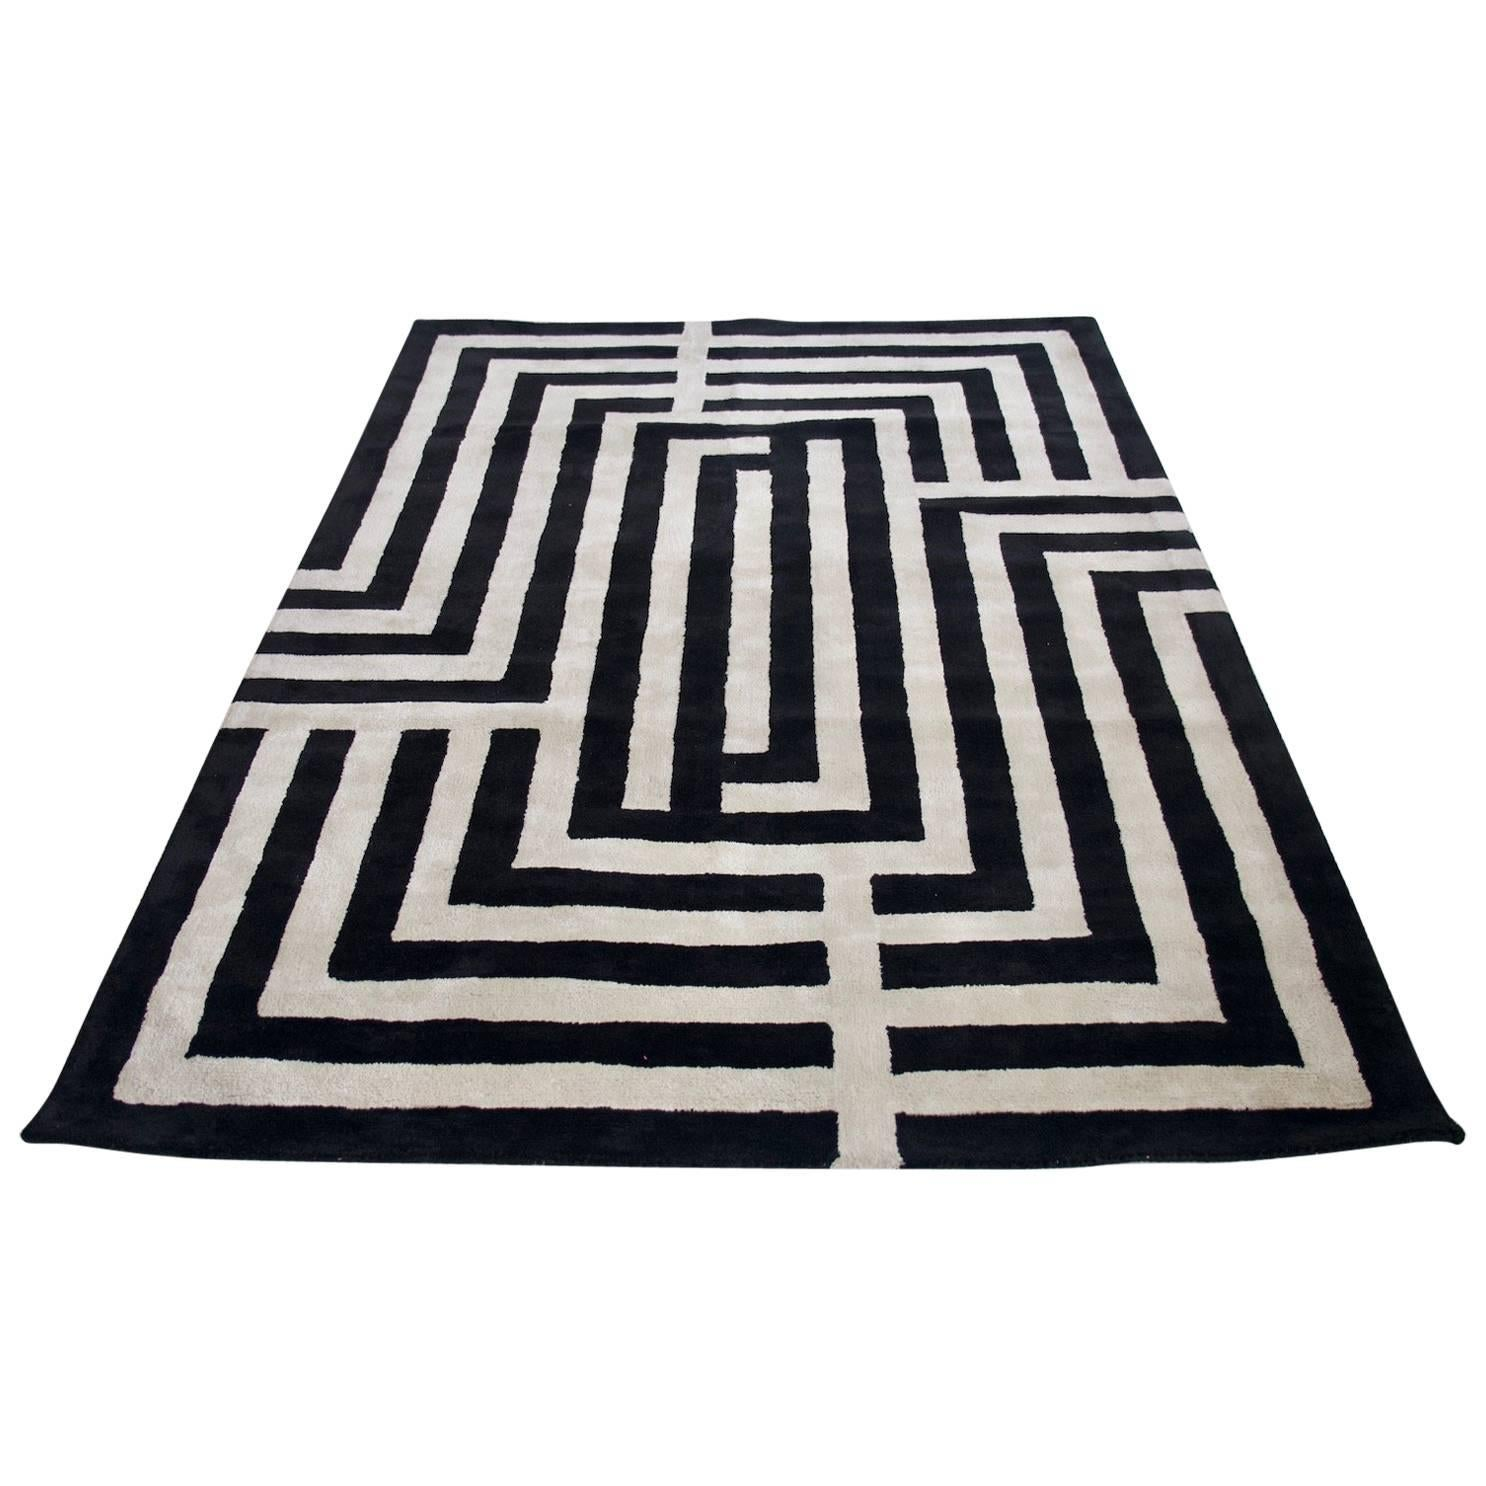 Beau Contemporary Black And White Rug With Geometric Pattern For Sale